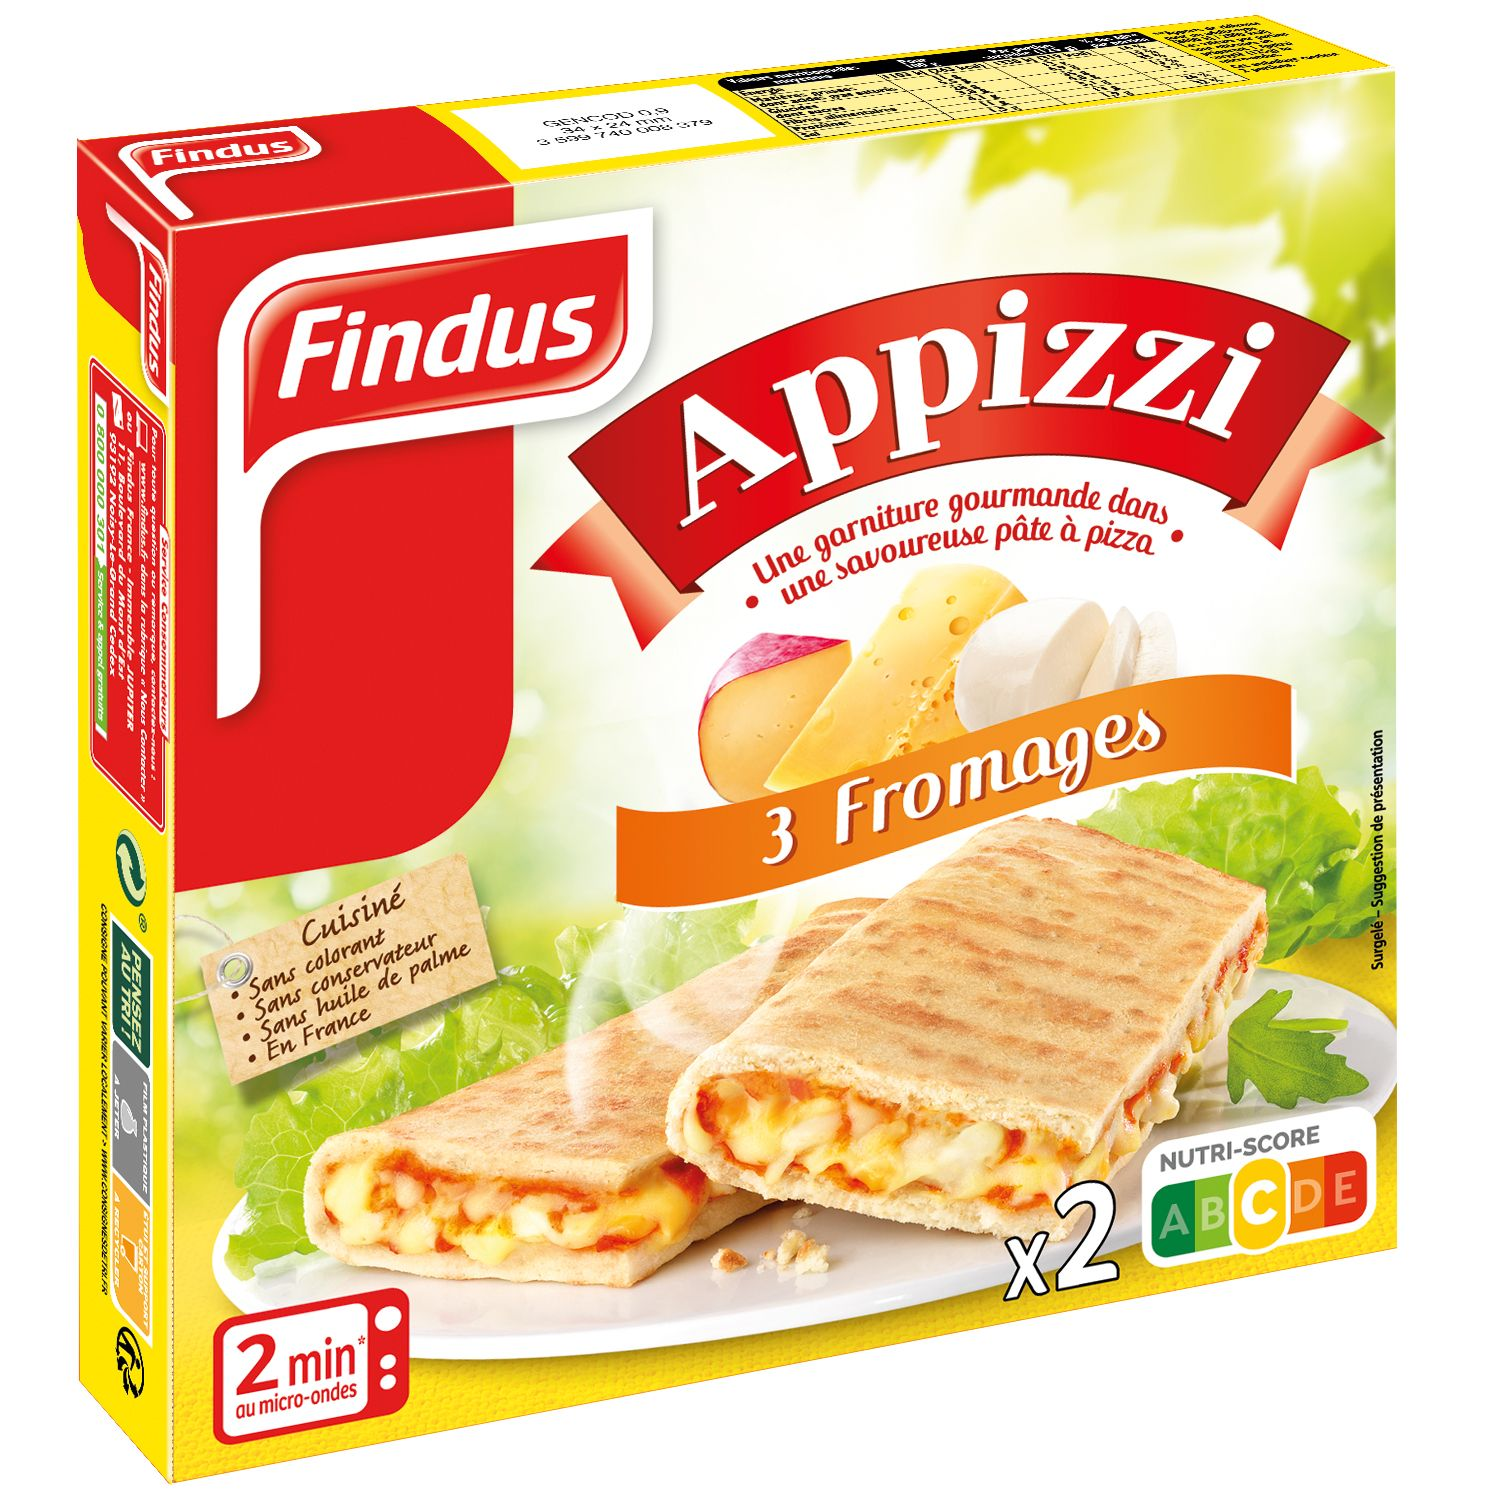 Appizzi 3 Fromages